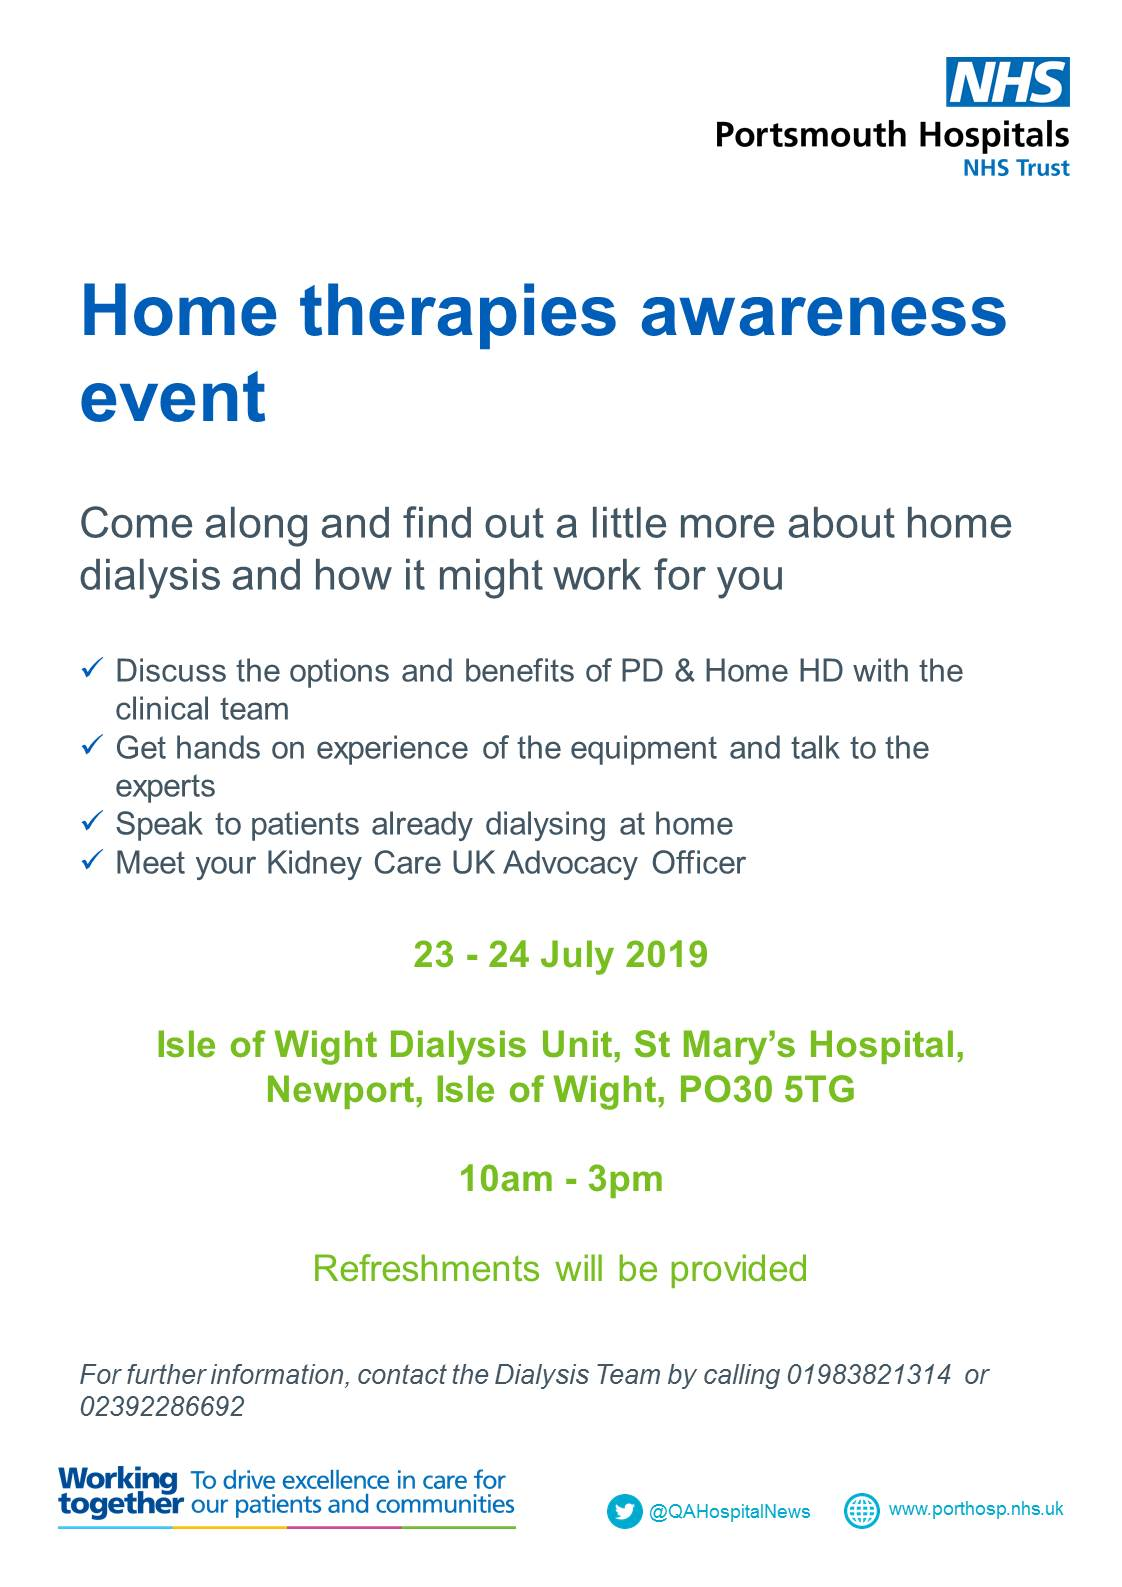 Home therapies awareness event